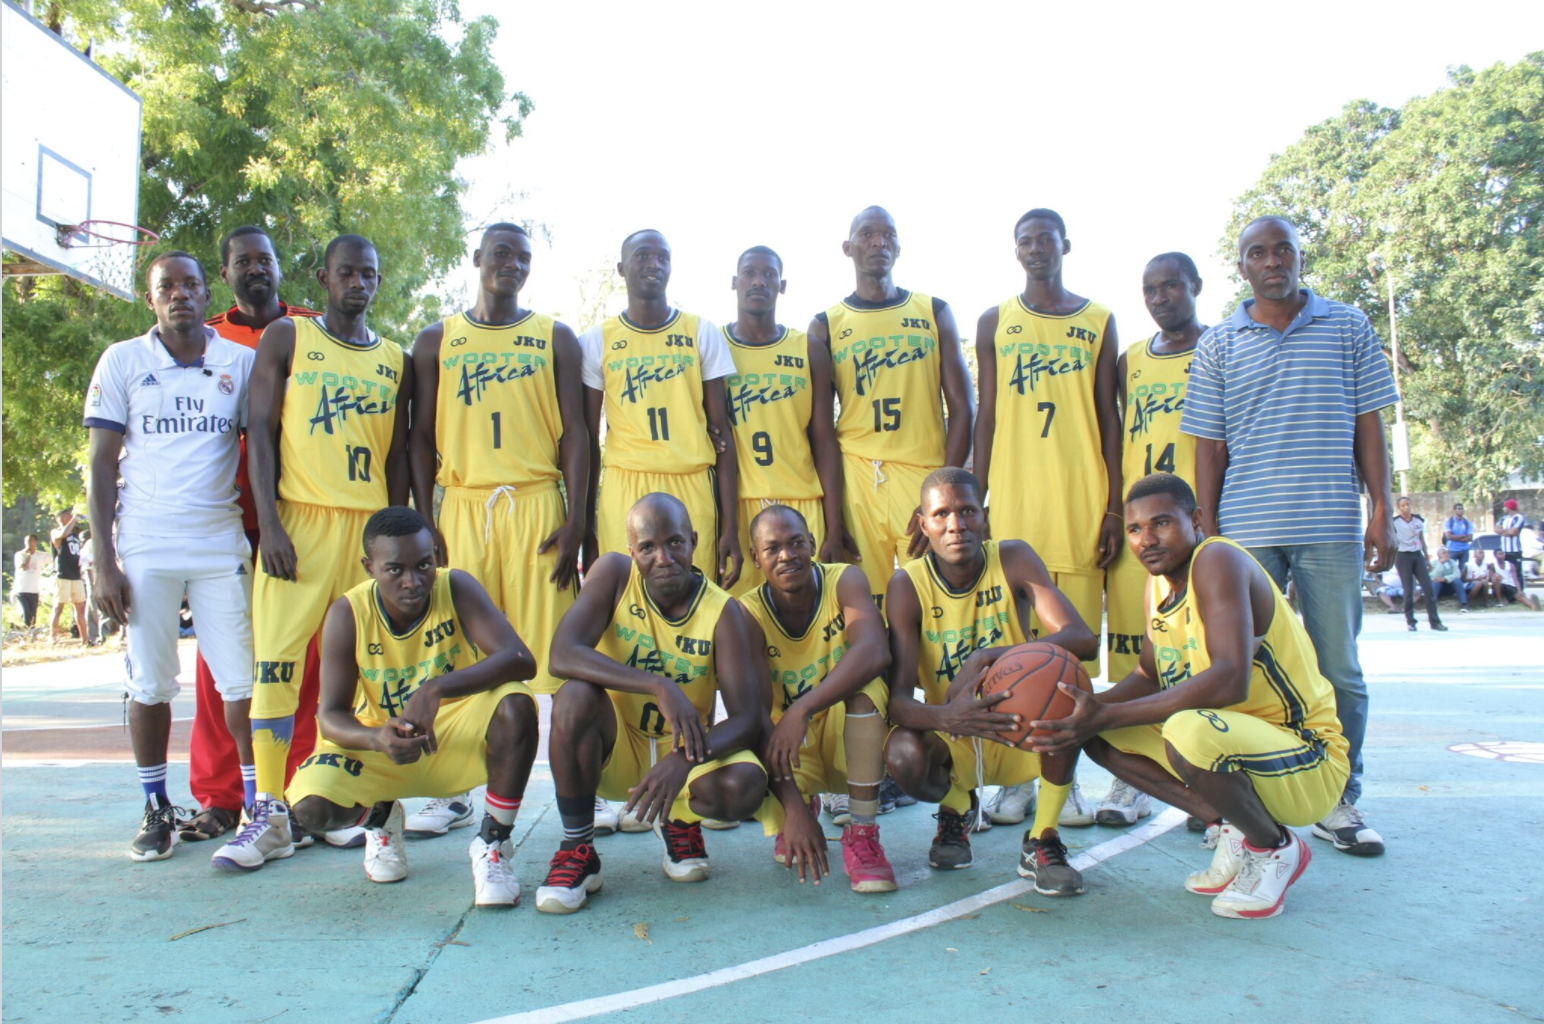 In September 2017, Wooter designed basketball uniforms and launched an entire 12-team basketball league in Zanzibar, Tanzania (Africa), which also includes a digital platform for officials, statistics and league website all  managed through the Wooter App .